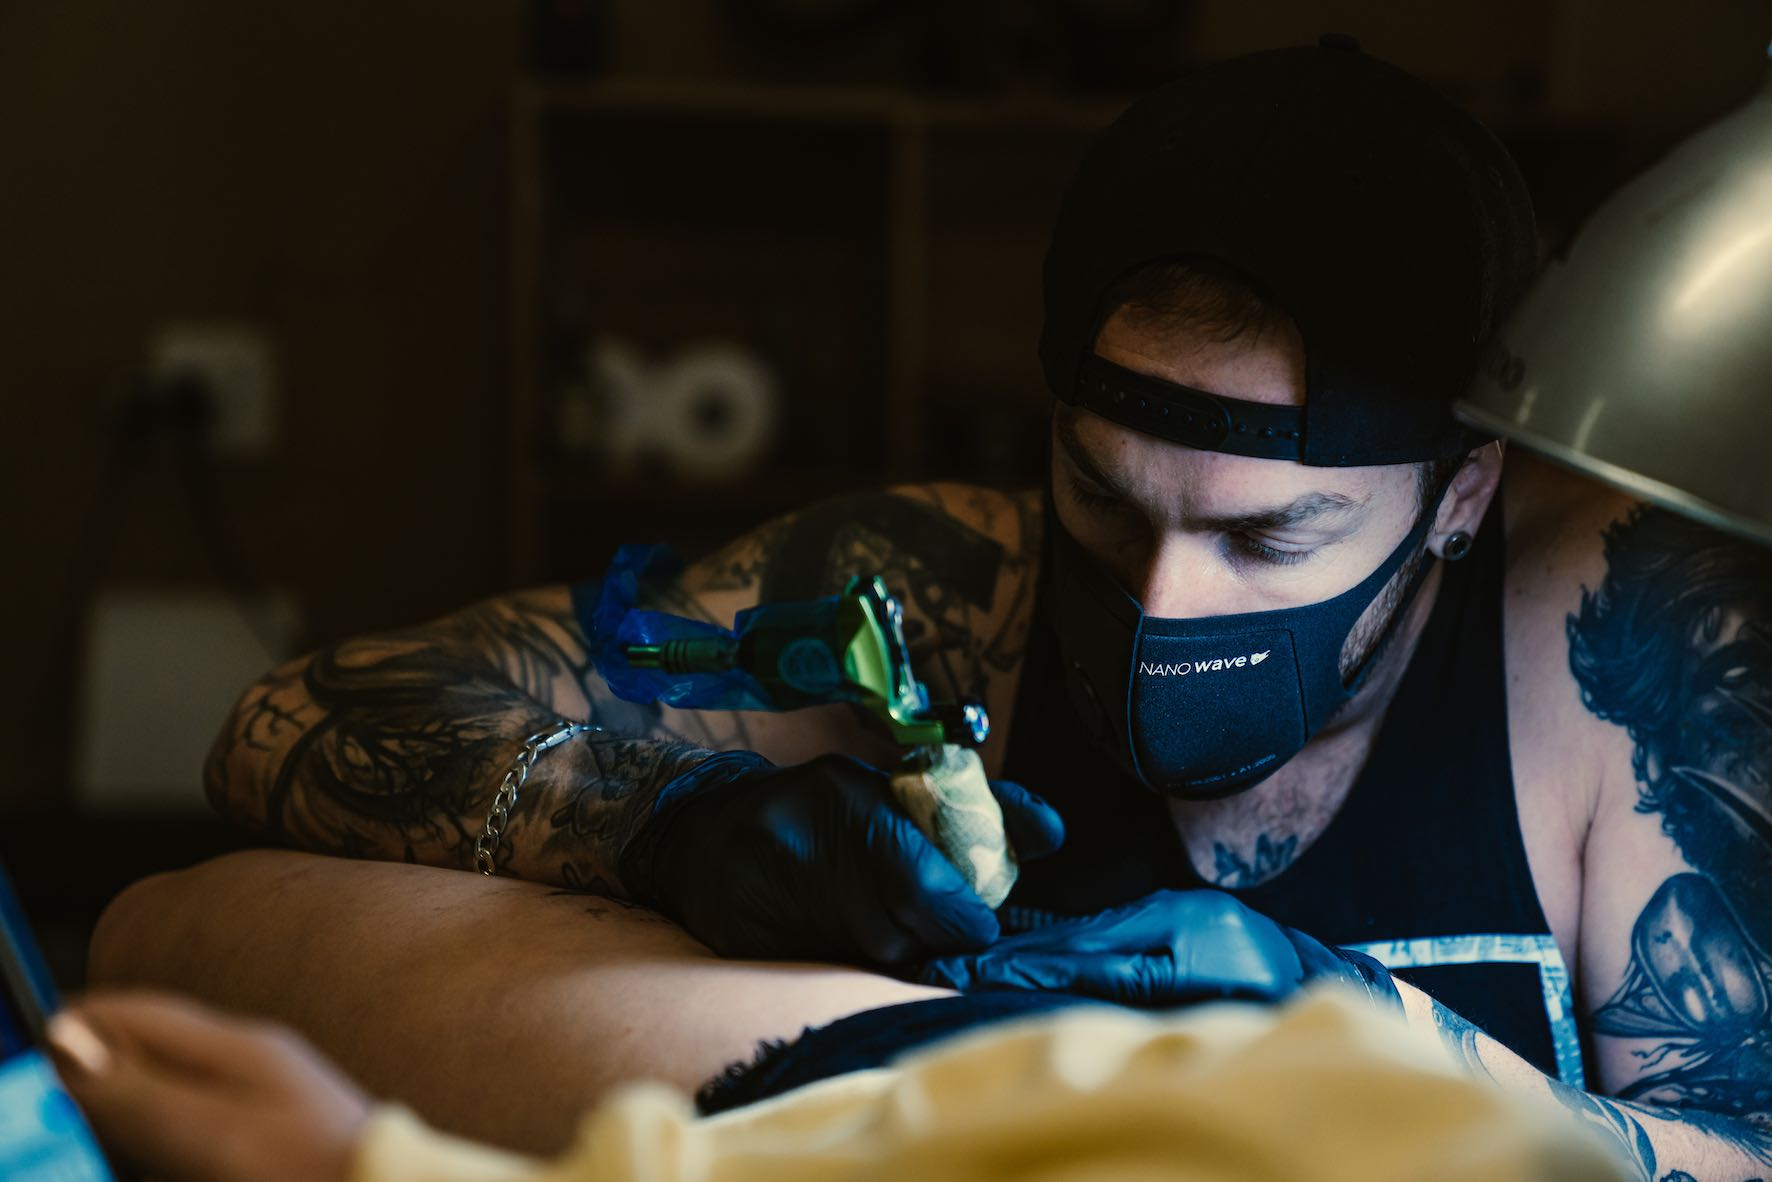 Interview with Lloyd John about being a tattoo artist